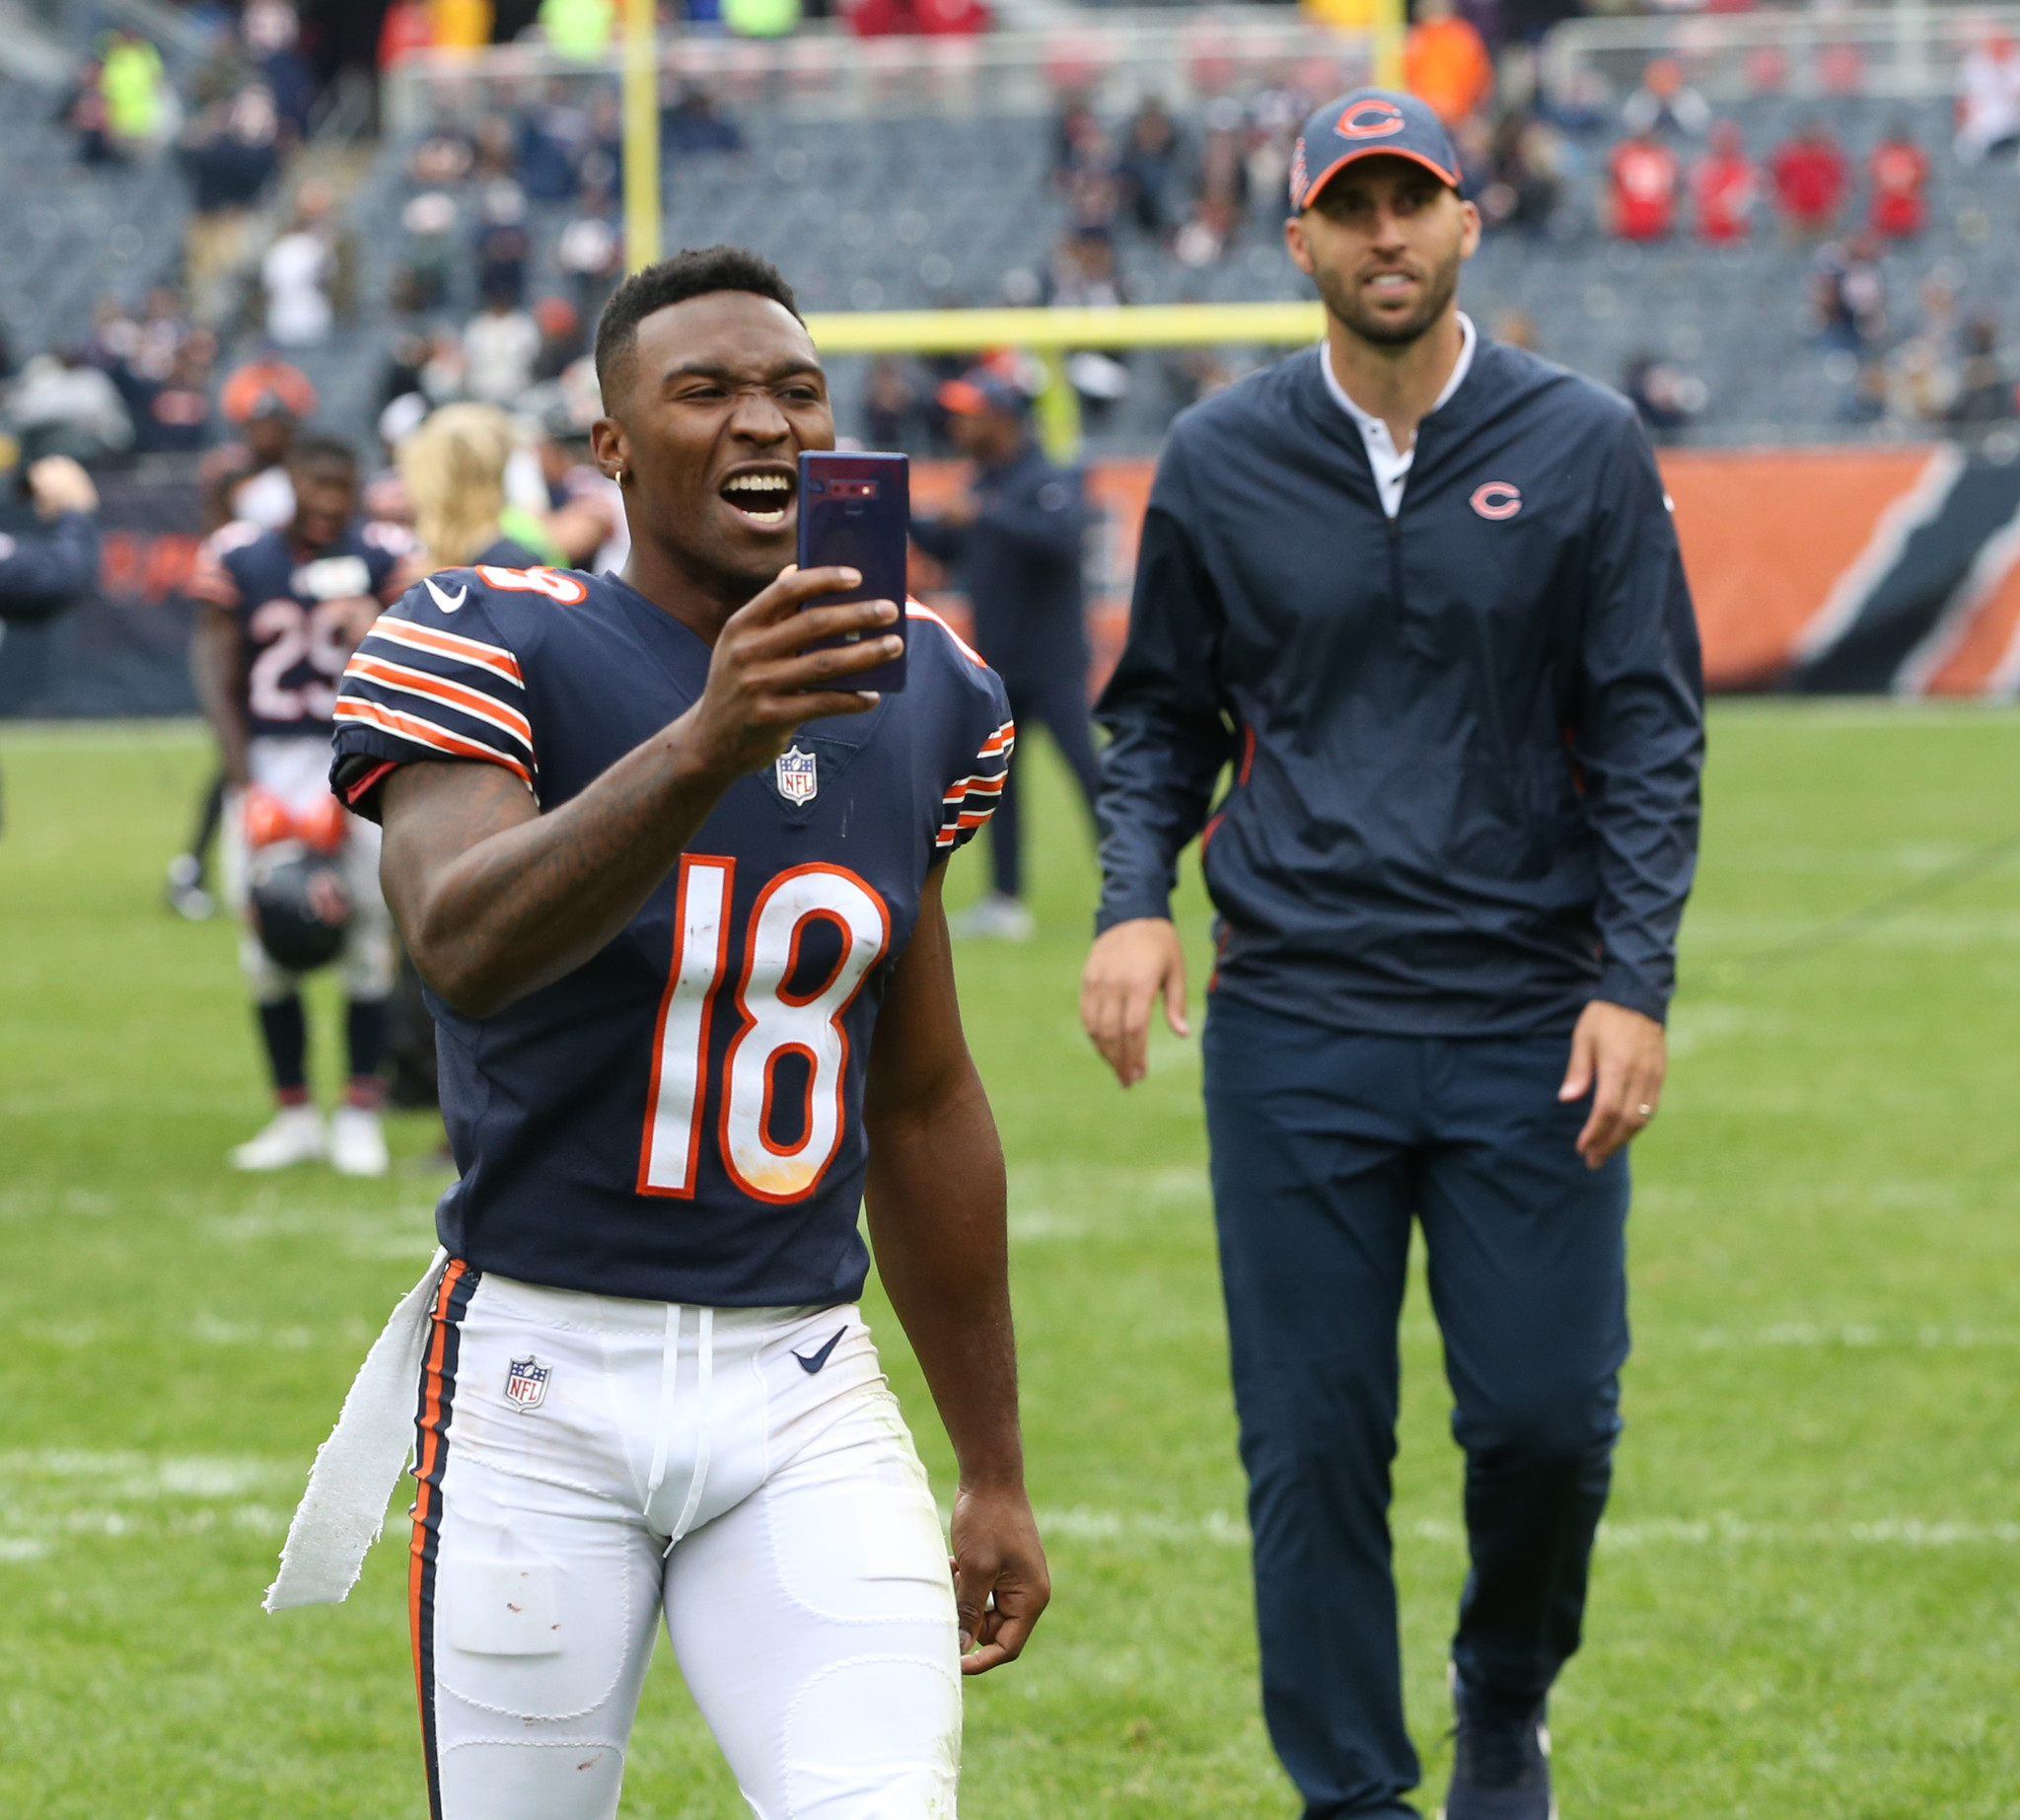 'It's crazy how that can help you:' How the Bears are relying on belief to overcome the Patriots' mystique